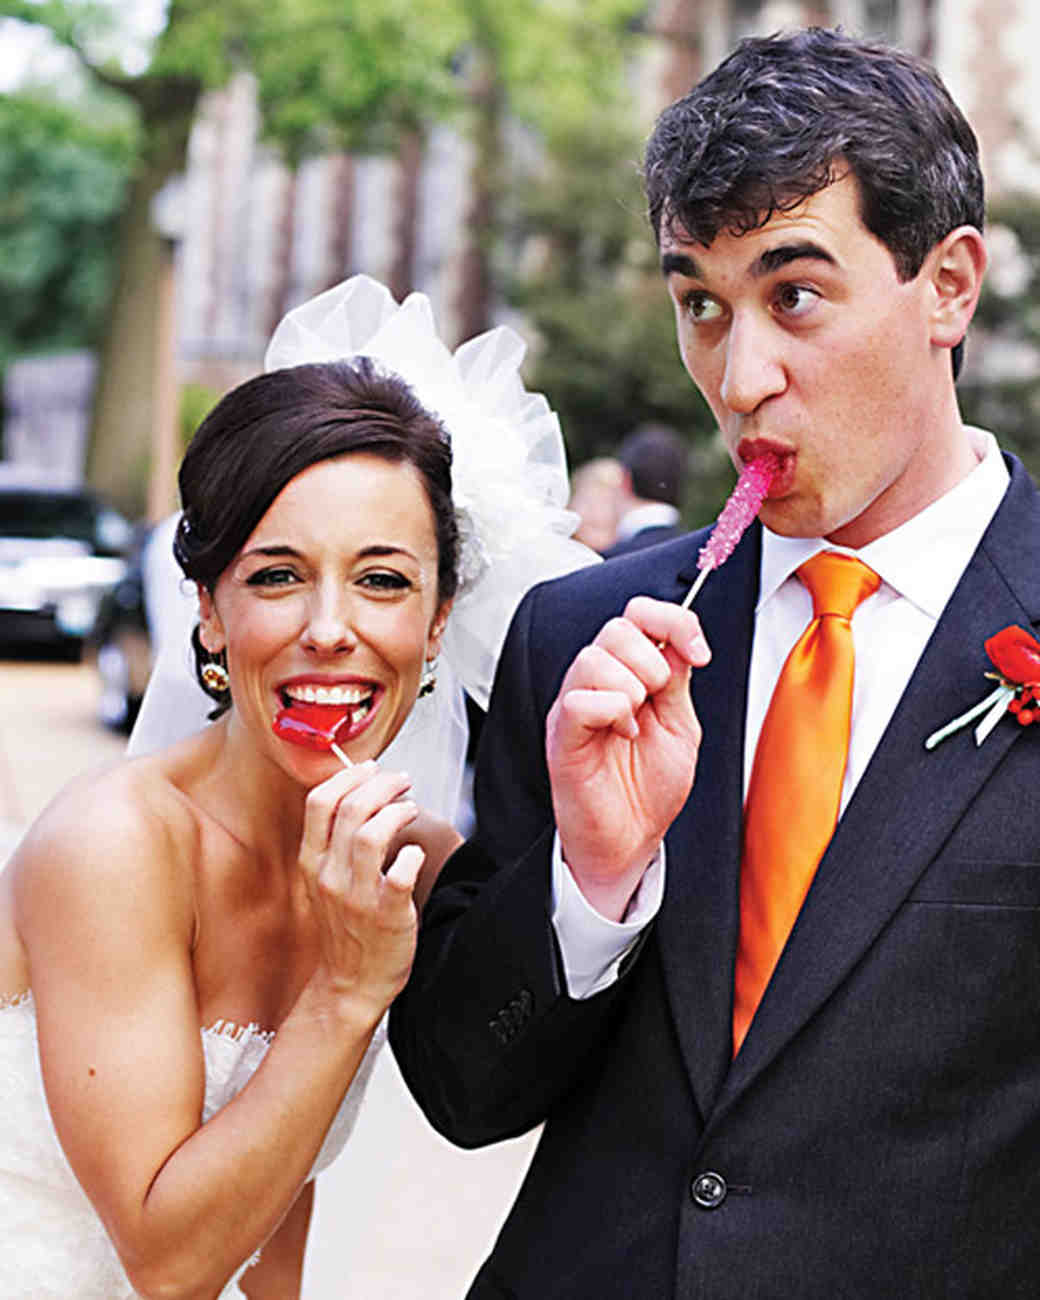 Bride and Groom Holding Lollipops